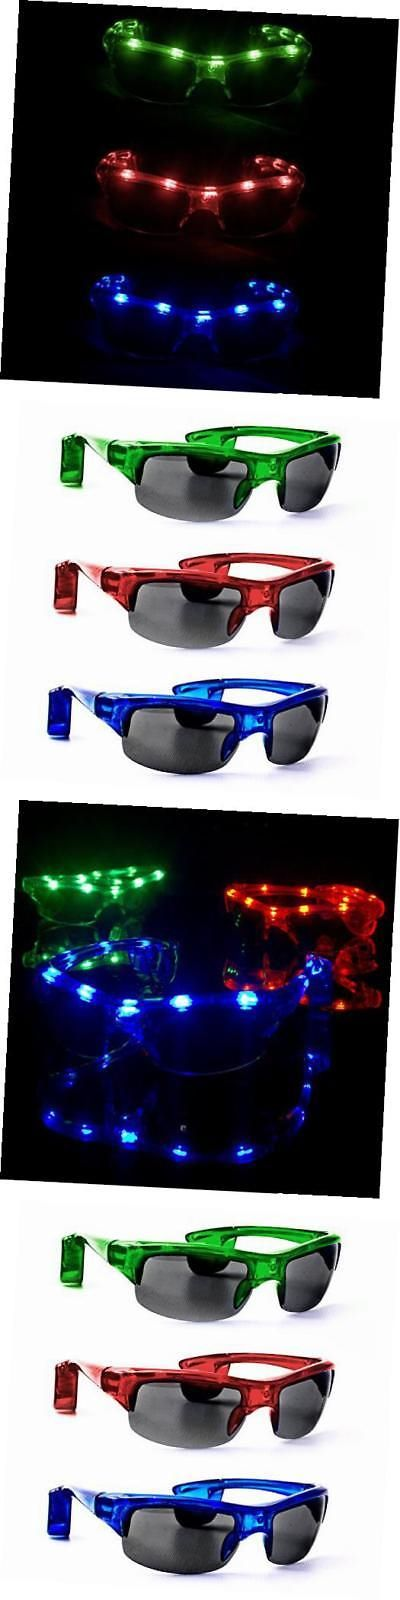 Glow Sticks and Glow Jewelry 108388: X713 Led Light Up Sporty Sunglasses -Assorted Colors - 12 Pack -> BUY IT NOW ONLY: $41.49 on eBay!